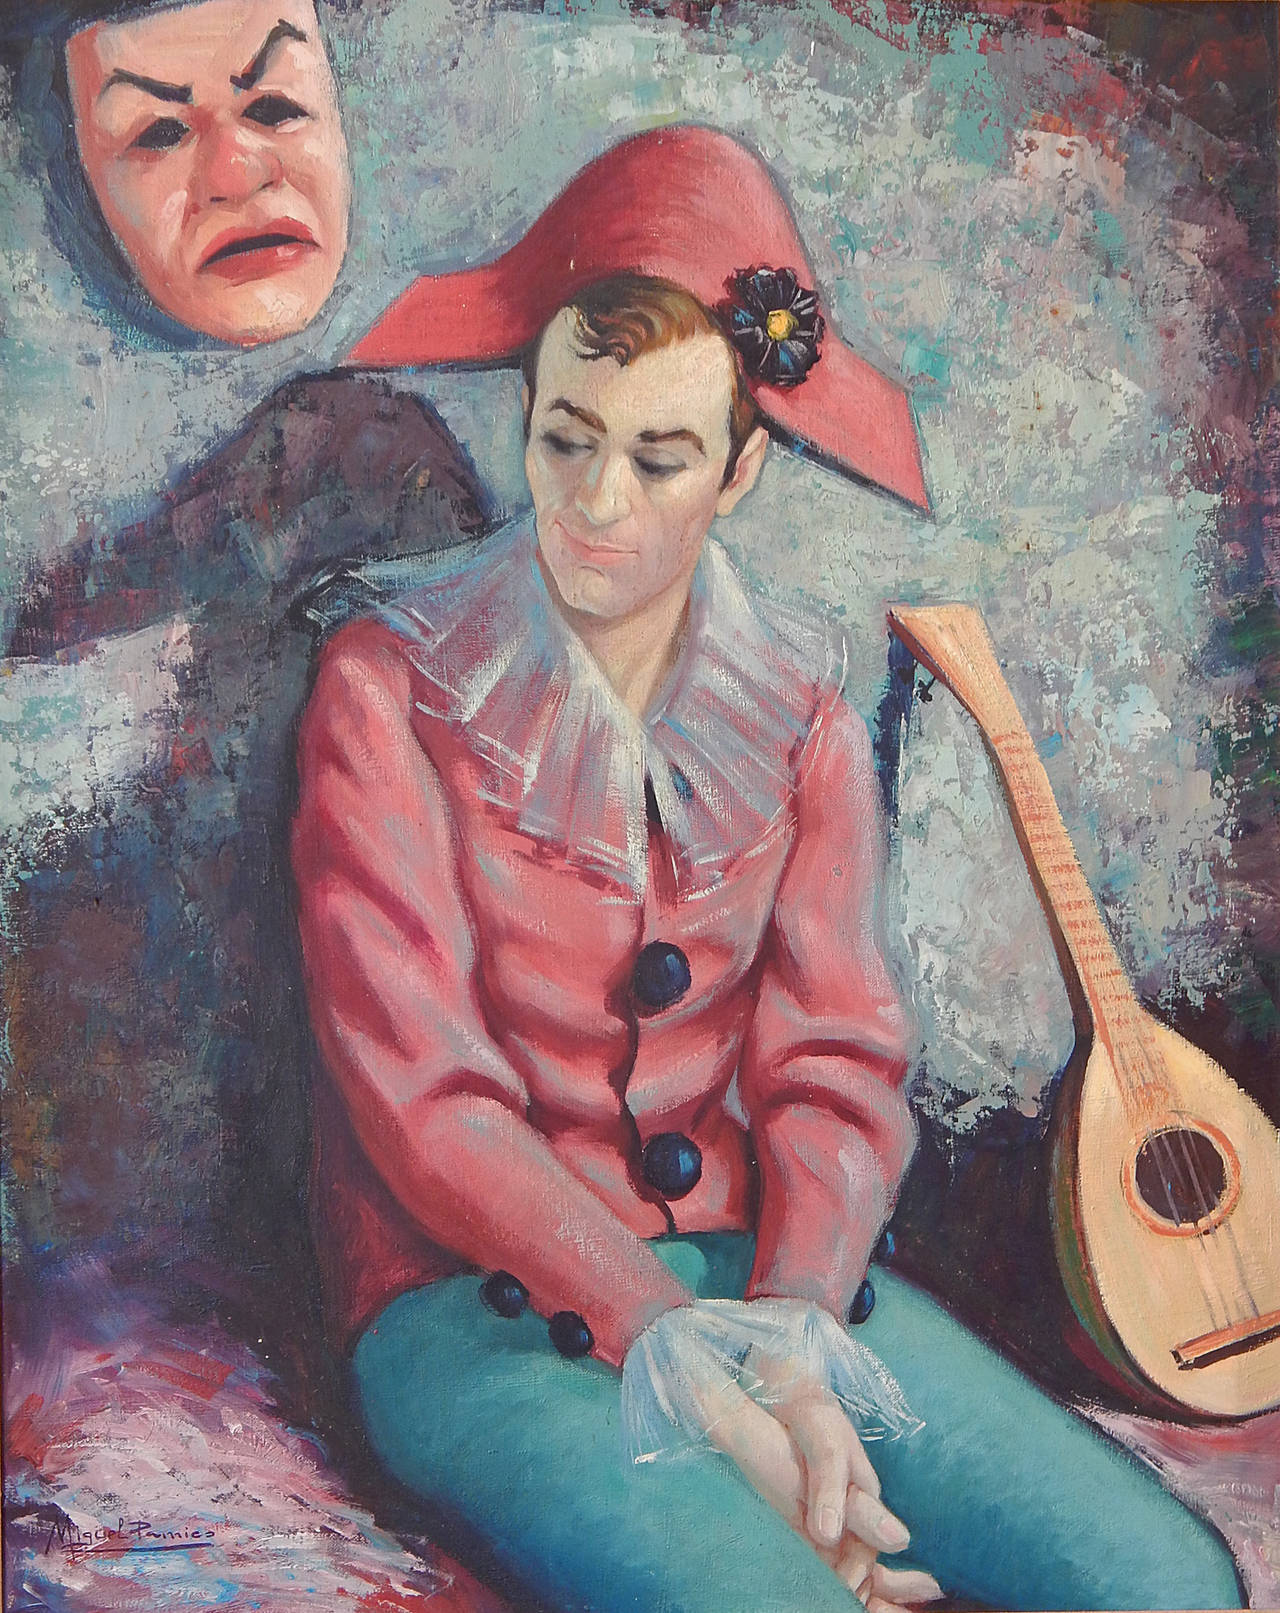 Making liberal use of brilliant colors, dominated by grey-blue and deep pink, this painting depicts a seated harlequin/musician figure with a faint, knowing smile, contrasting with the mask of tragedy hanging on the wall to one side. The halequin's